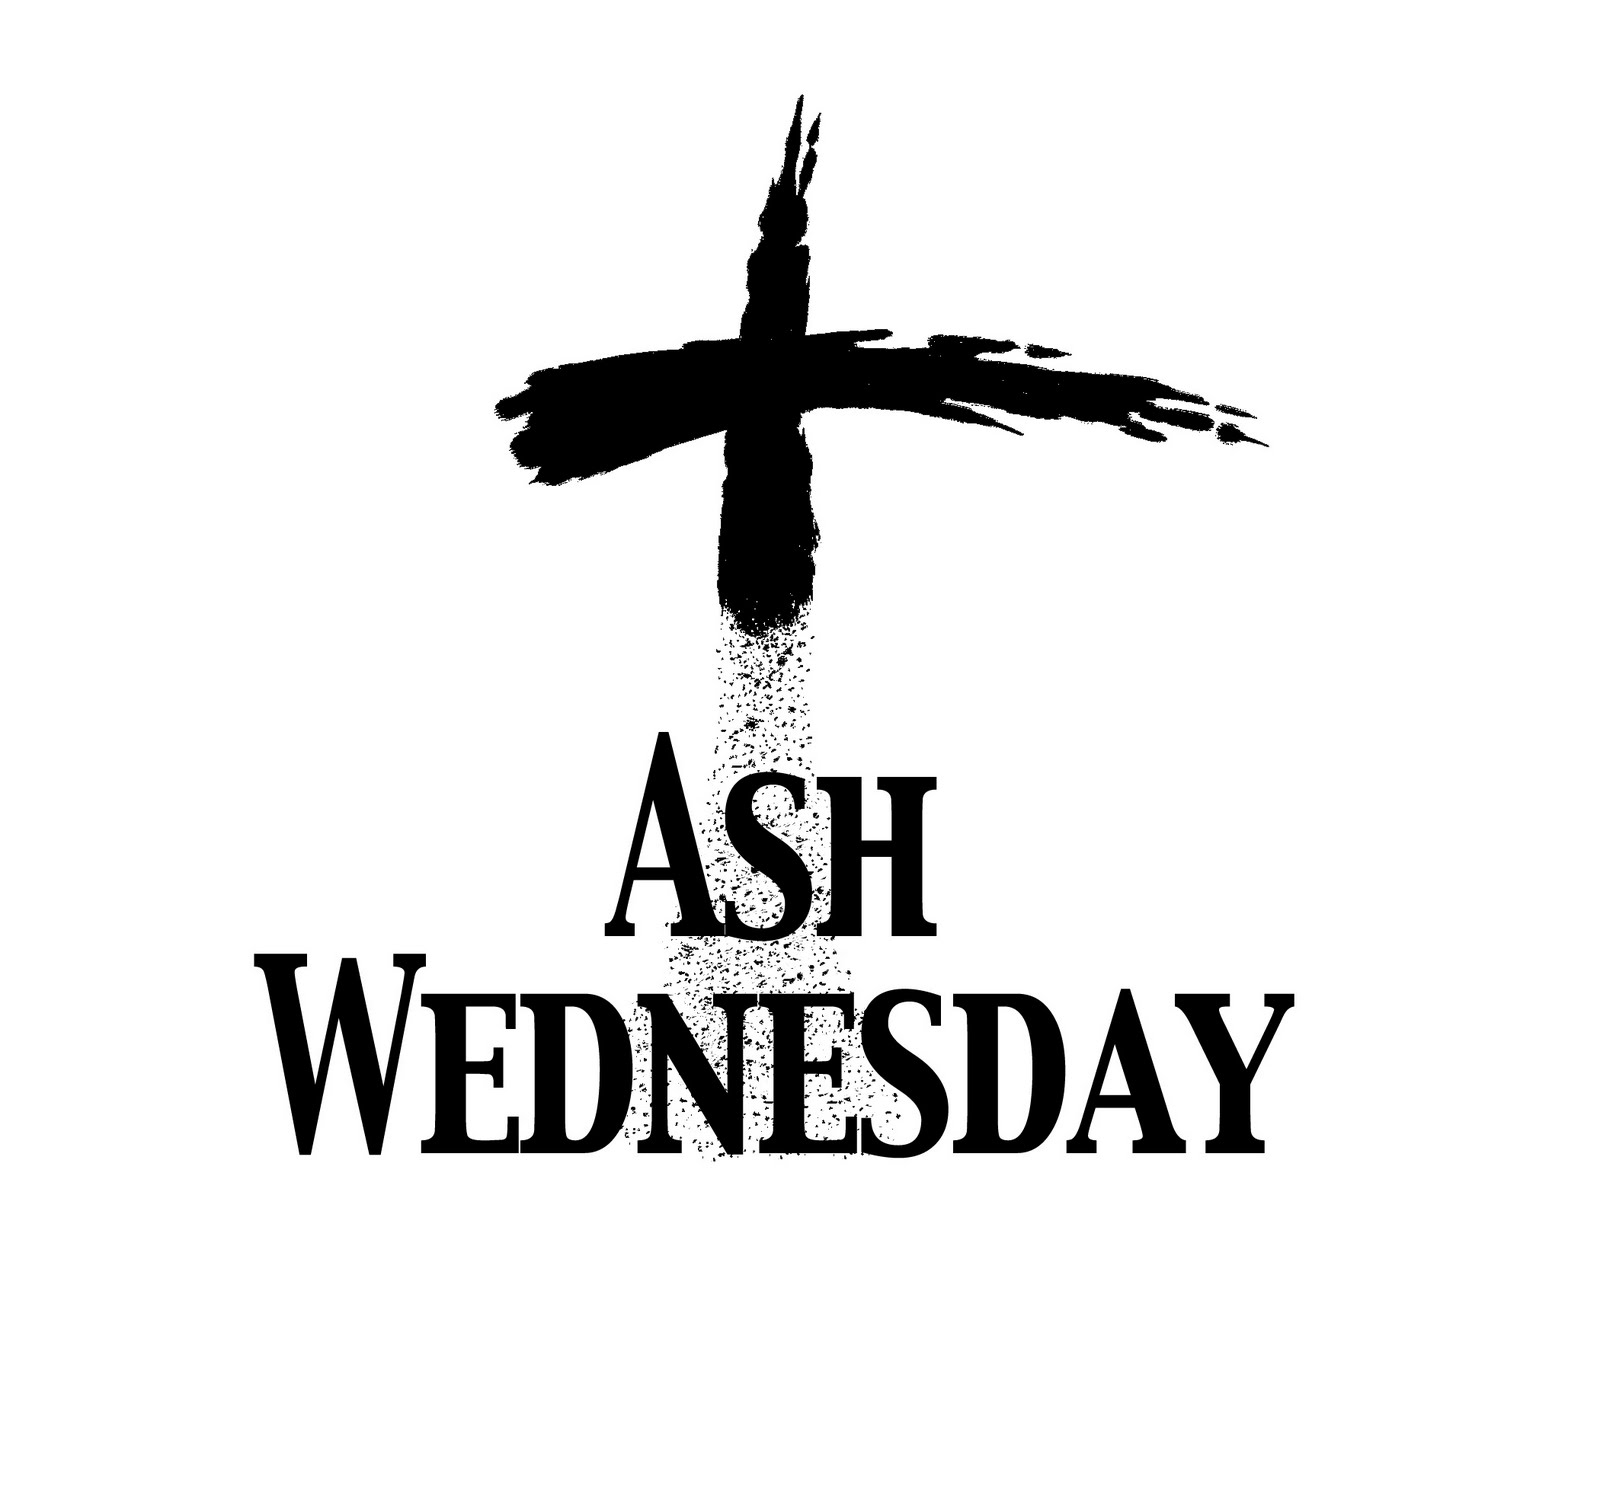 ash wednesday clip art clipart panda free clipart images rh clipartpanda com ash wednesday cross clip art ash wednesday 2017 images clip art